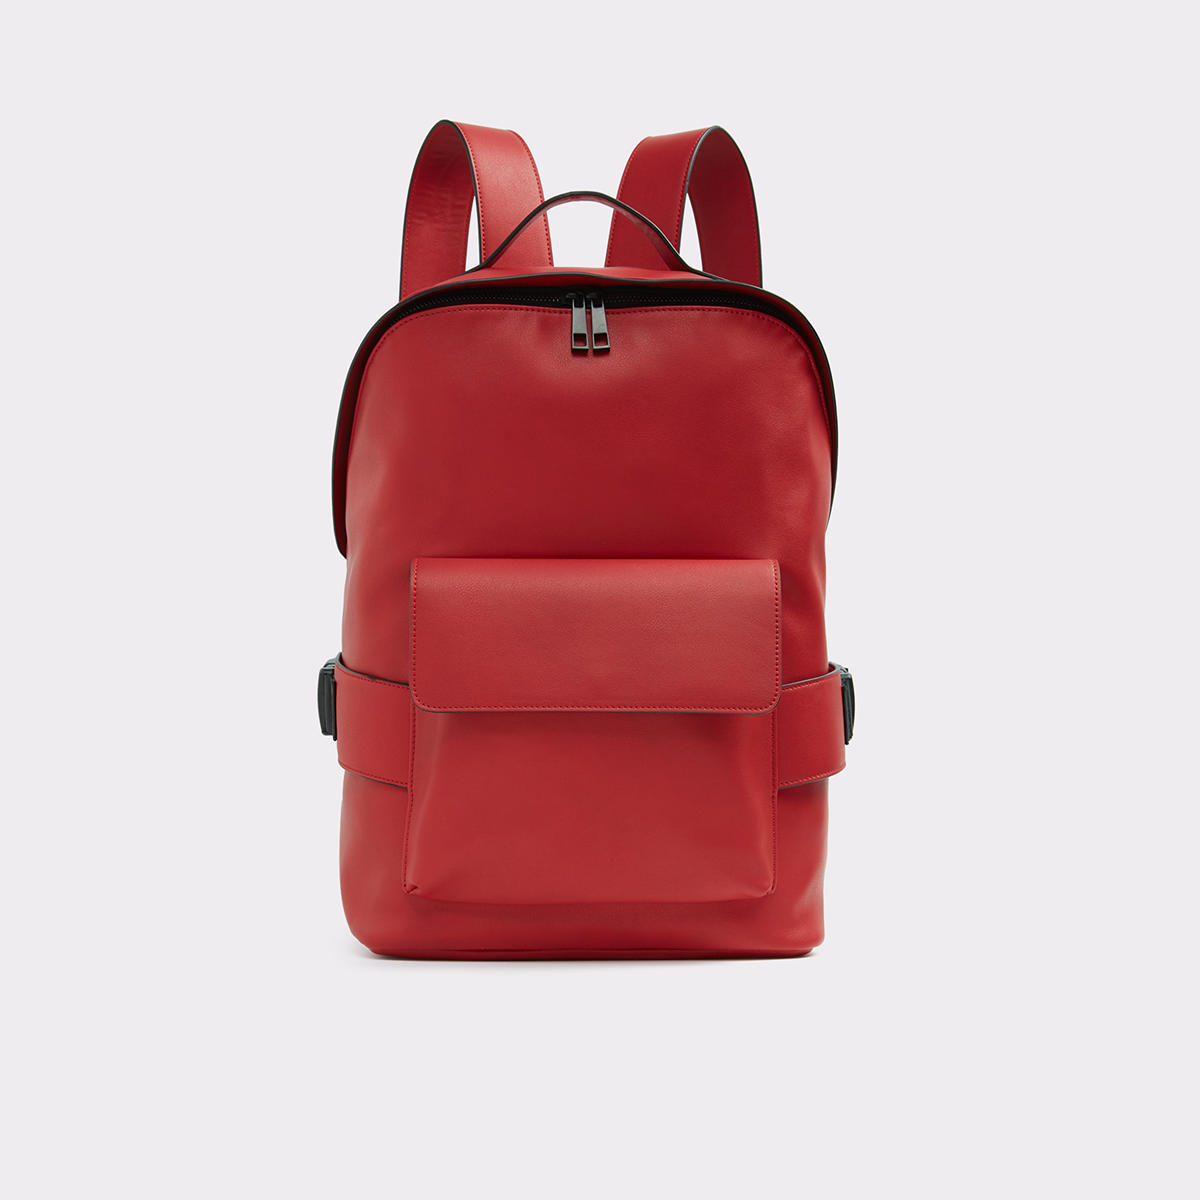 Chelinia Red Men's Bags & wallets | ALDO US at Aldo Shoes in Victor, NY | Tuggl